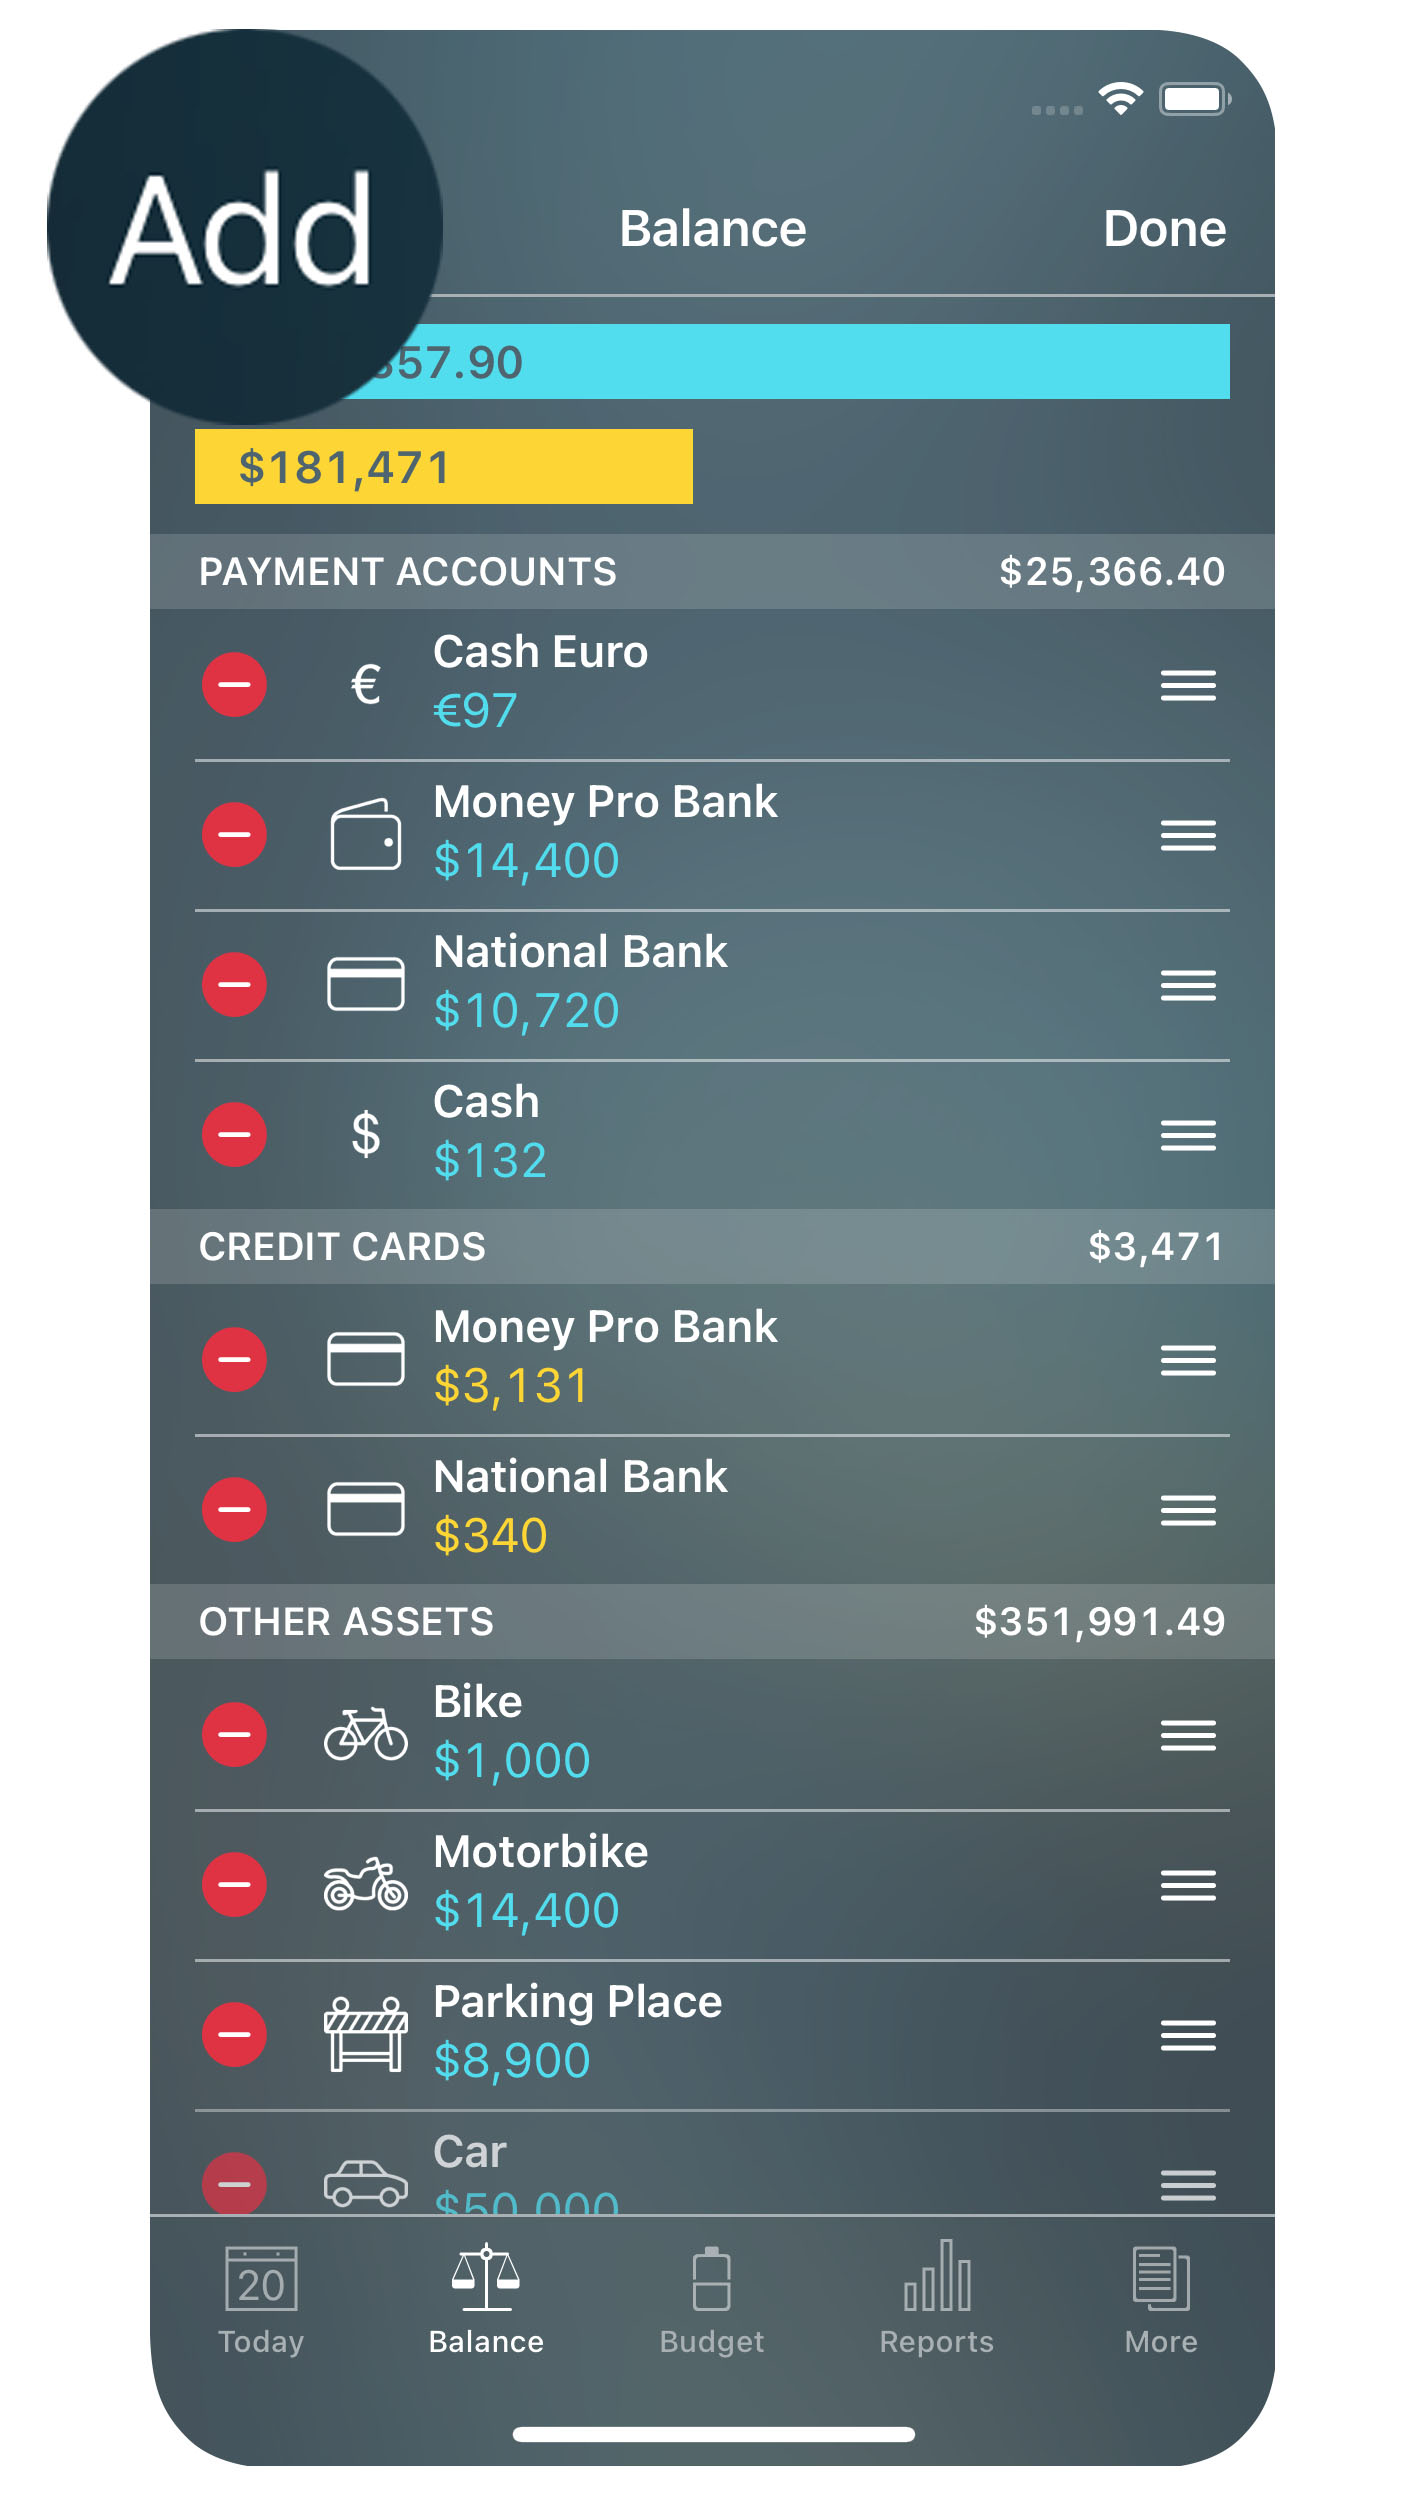 Money Pro - Accounts - Add - iPhone